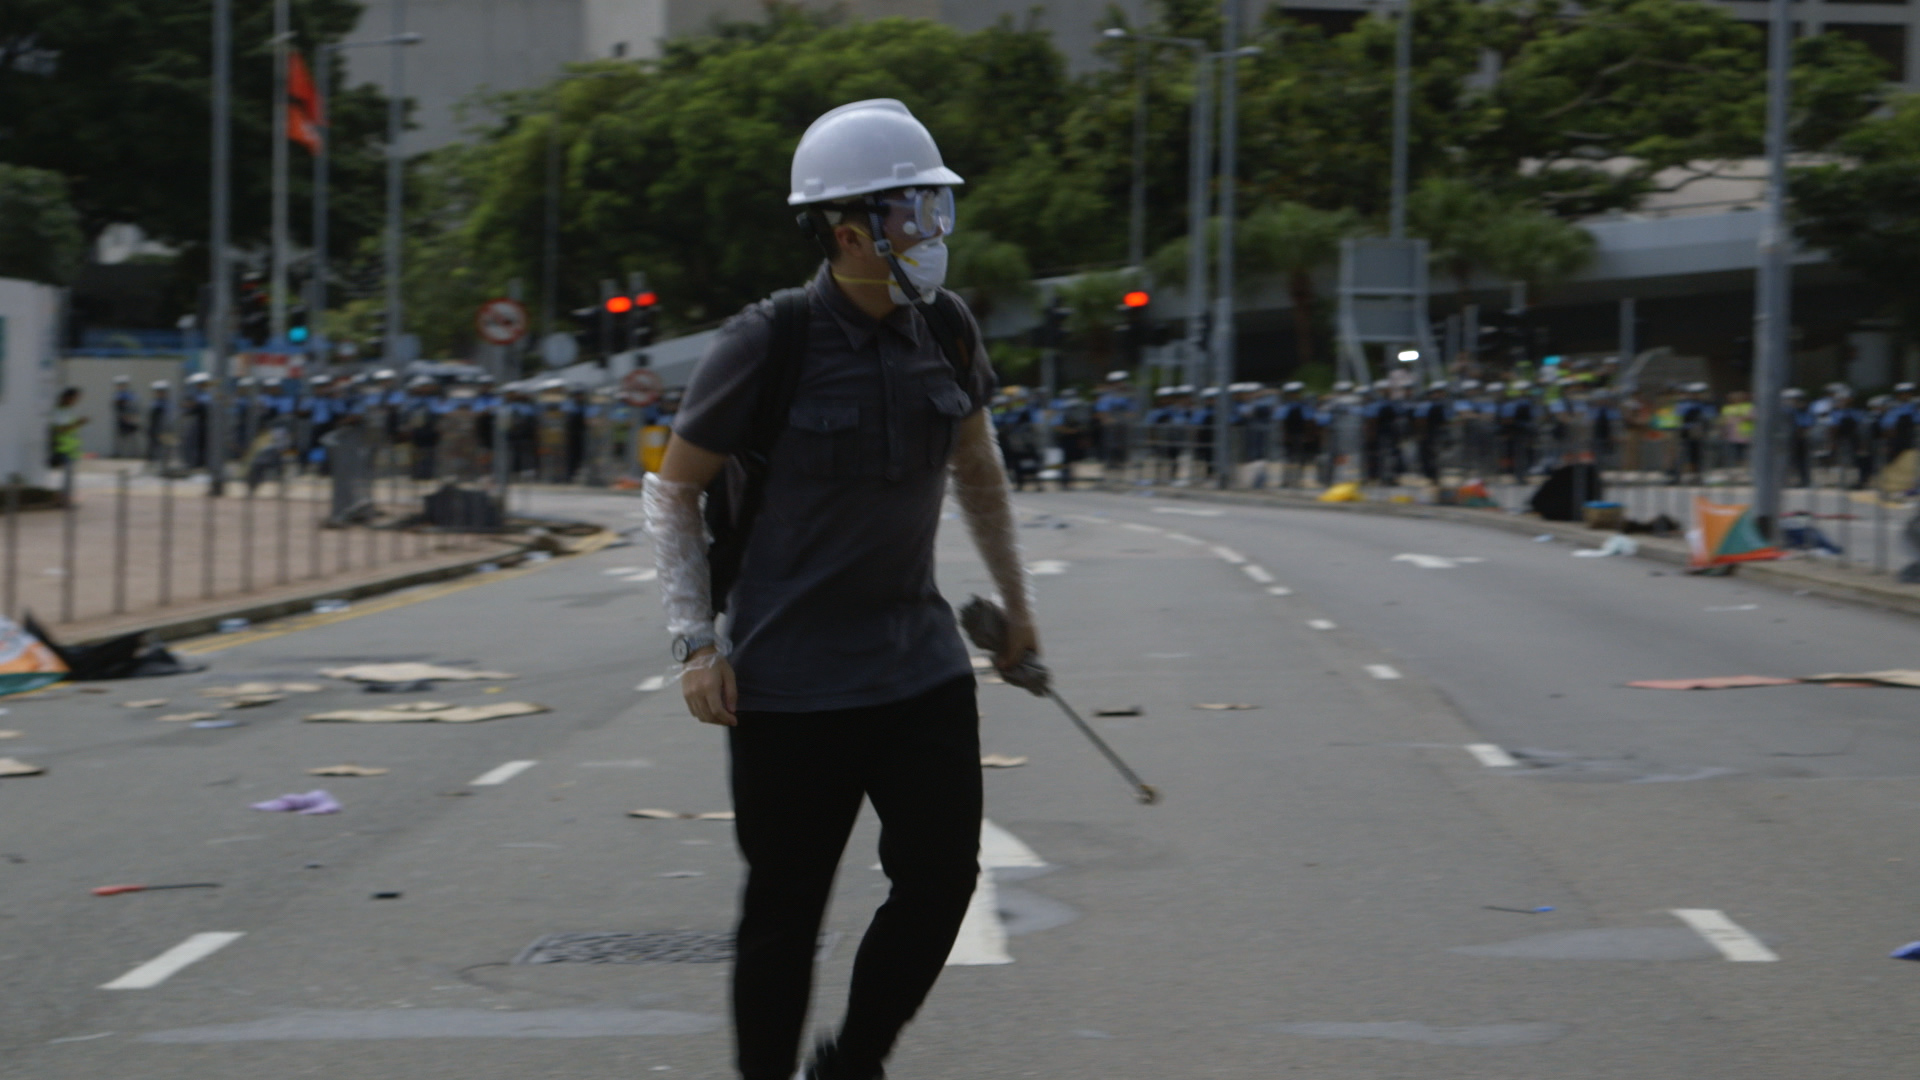 Pepper Spray, Batons and a Half-Bitten Finger: Hong Kong's Weekend of Protests